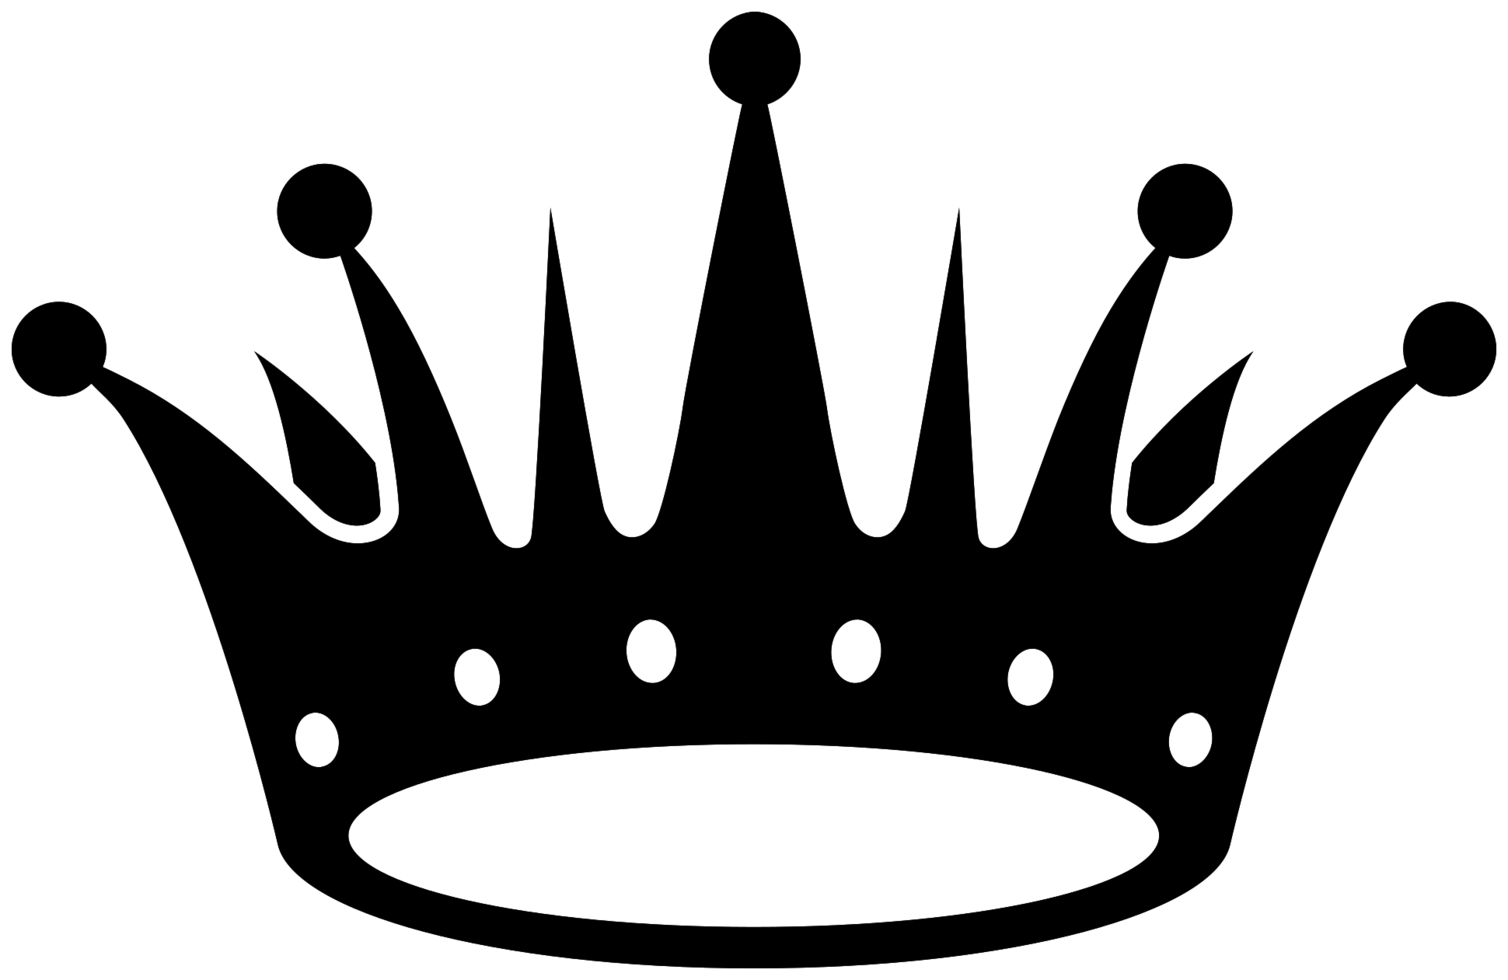 Free Couronne Png With Transparent Background